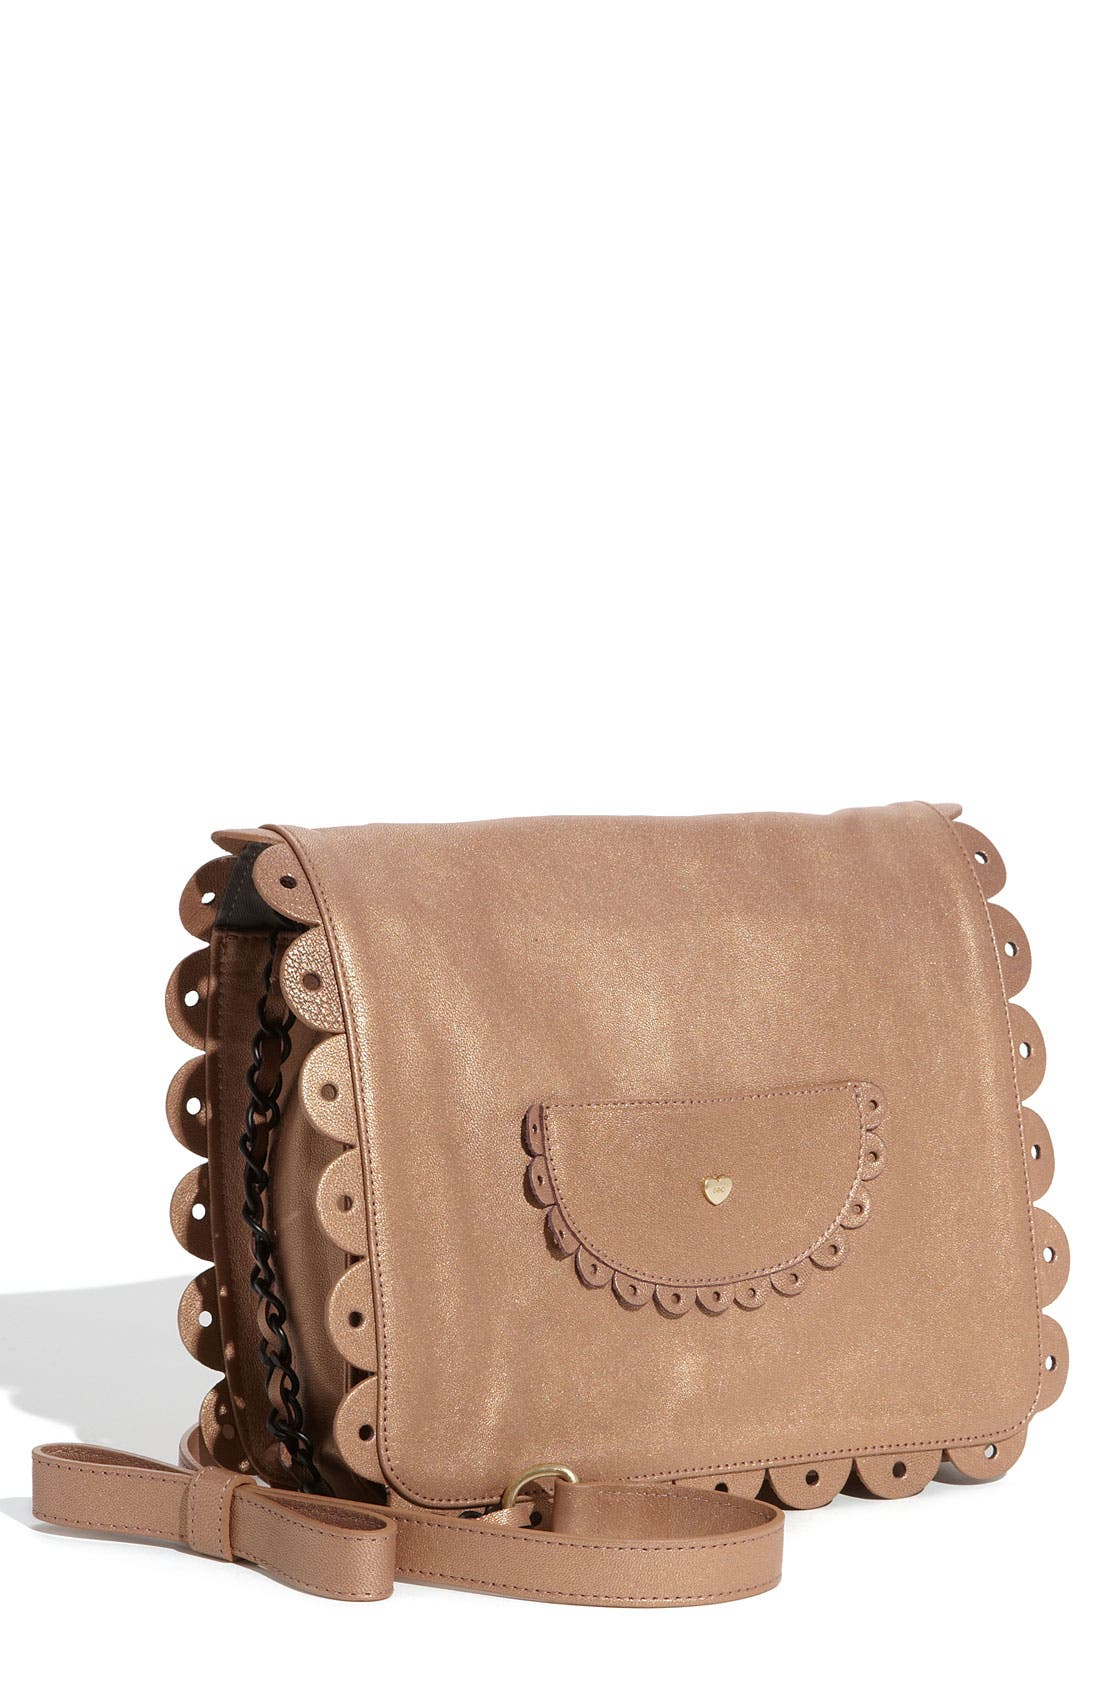 Main Image - See By Chloé 'Poya Metallic Vintage - Large' Crossbody Bag